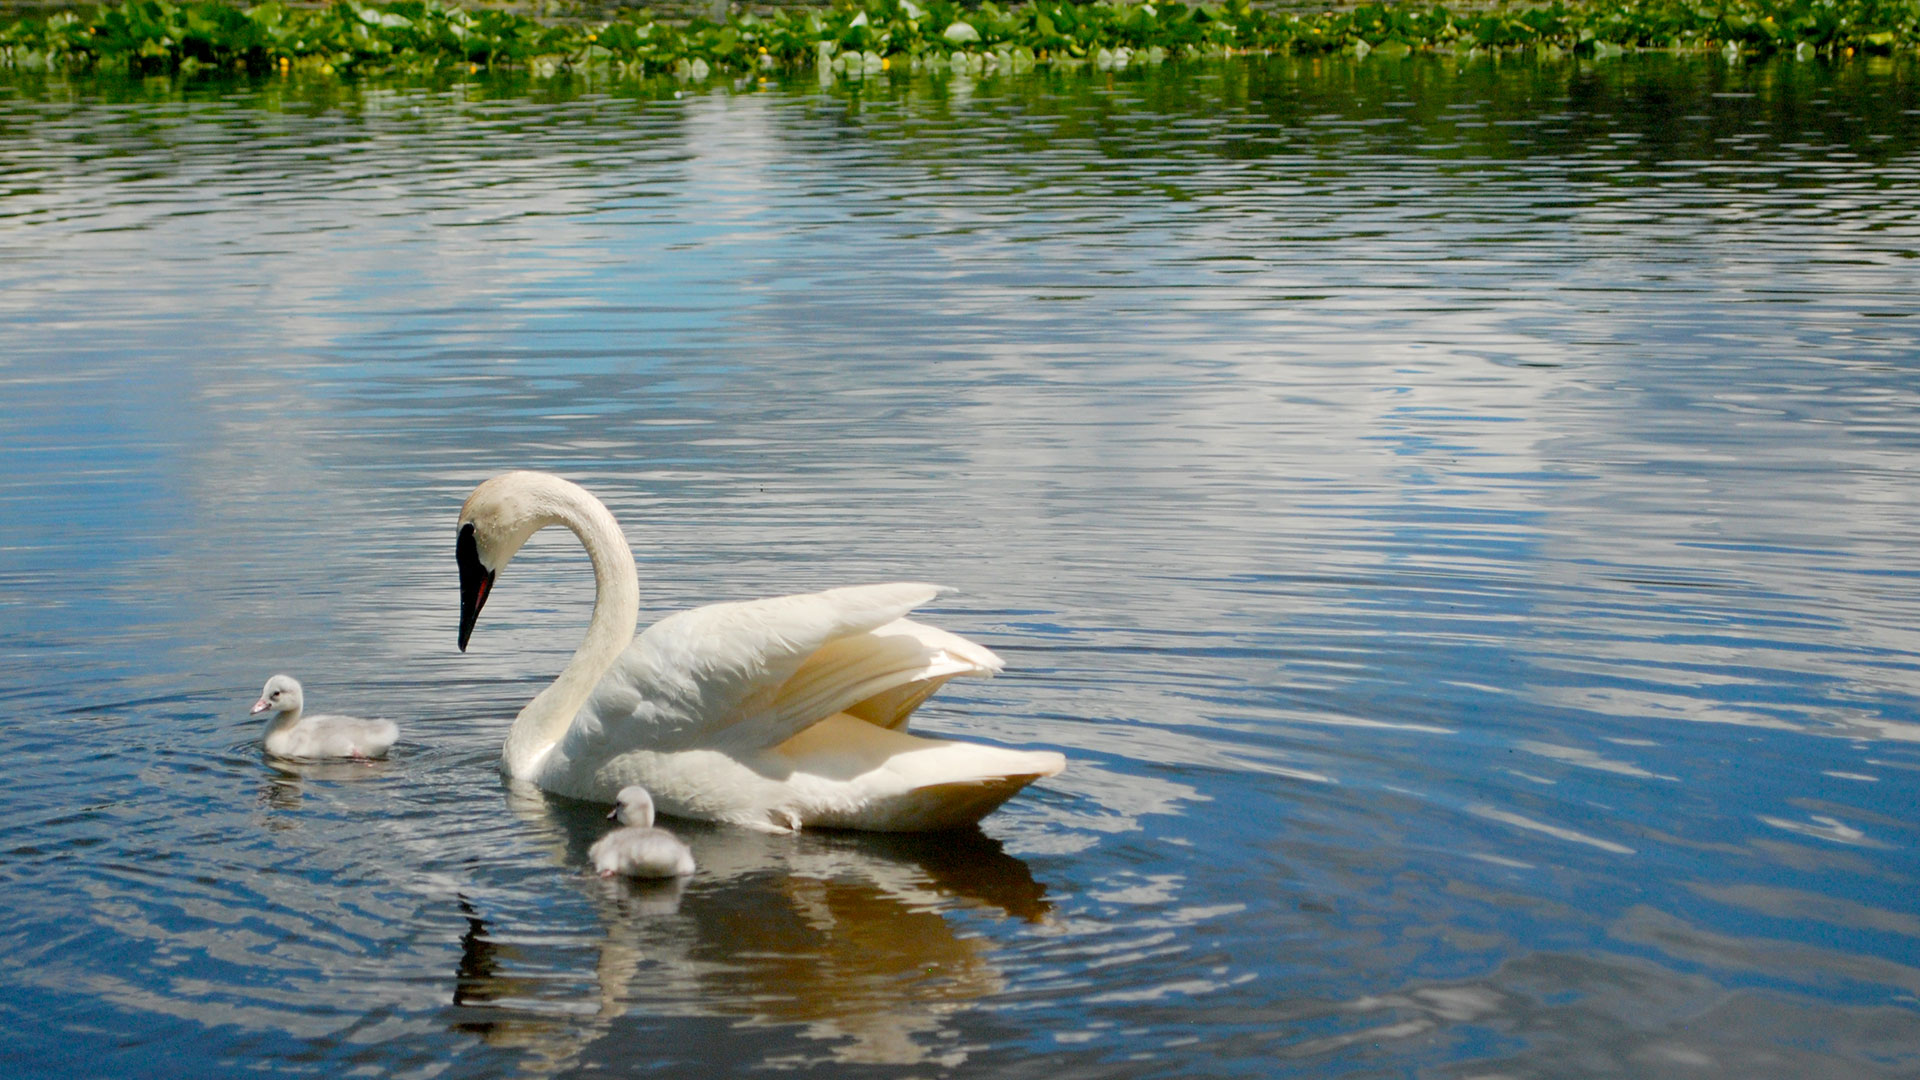 A Trumpeter Swan floats in Wintergreen Lake with cygnets.